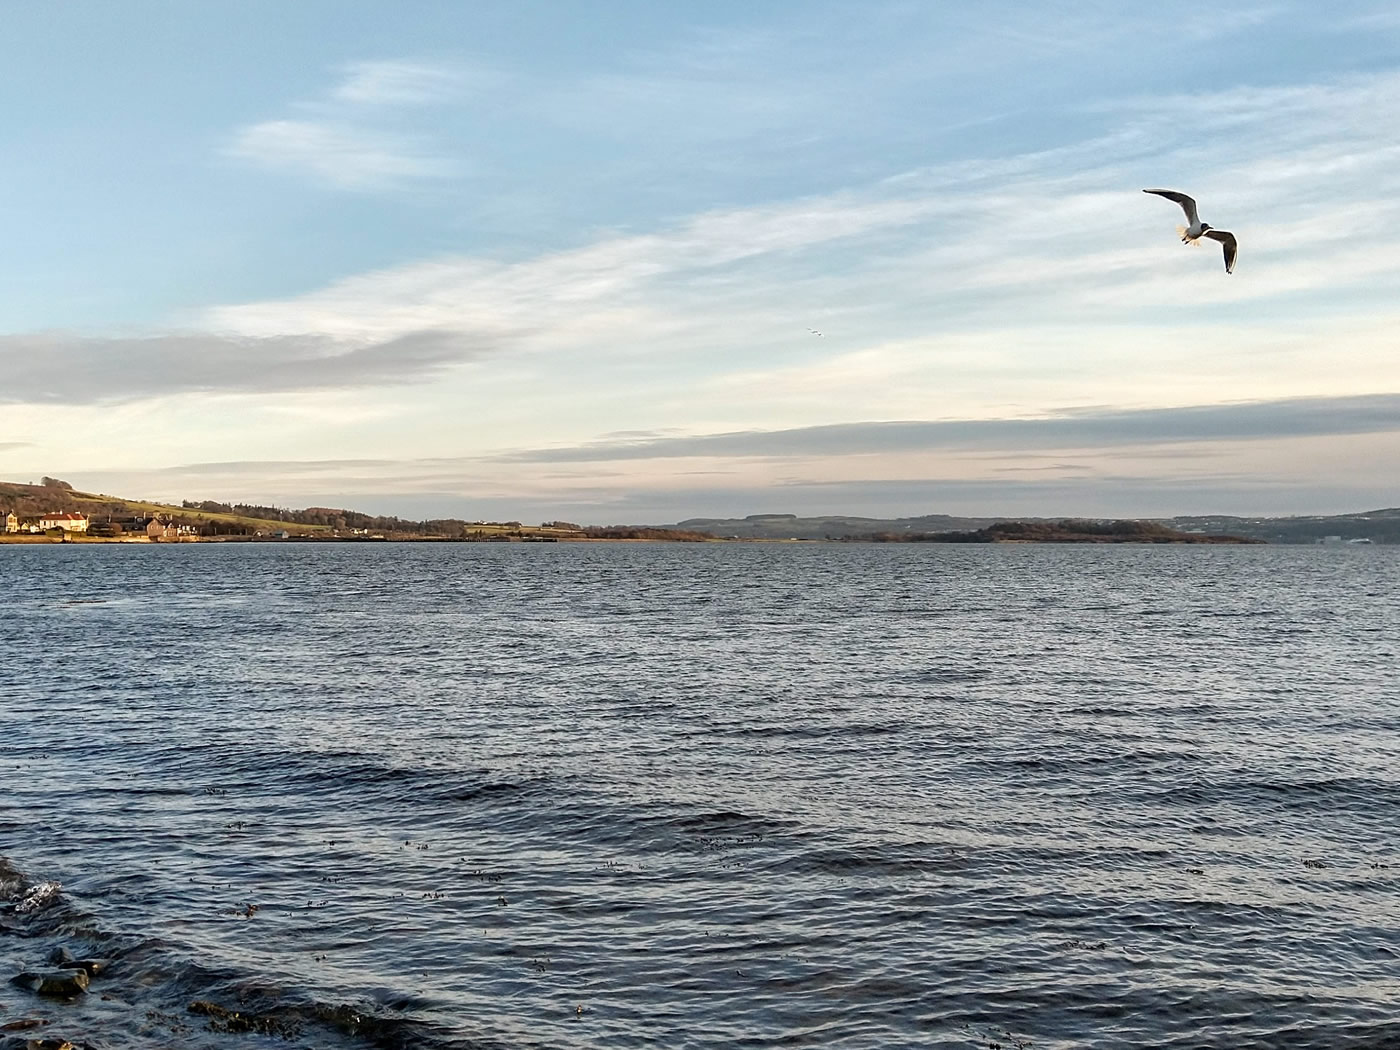 A seagull gliding in the breeze above the foreshore at the civic centre in Helensburgh